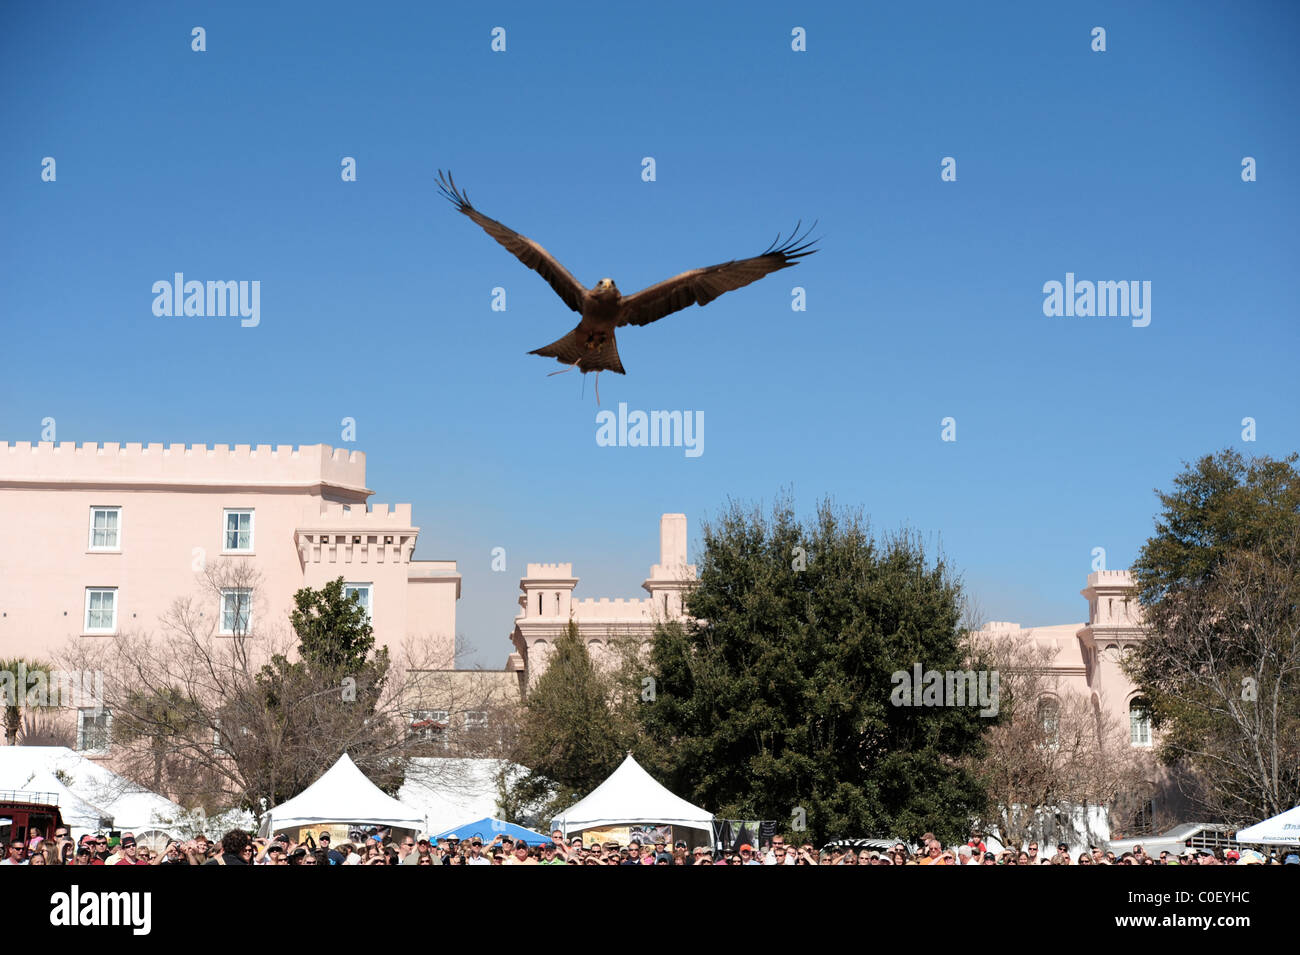 Tawny eagle in flight above spectators at birds of prey demonstration - Stock Image